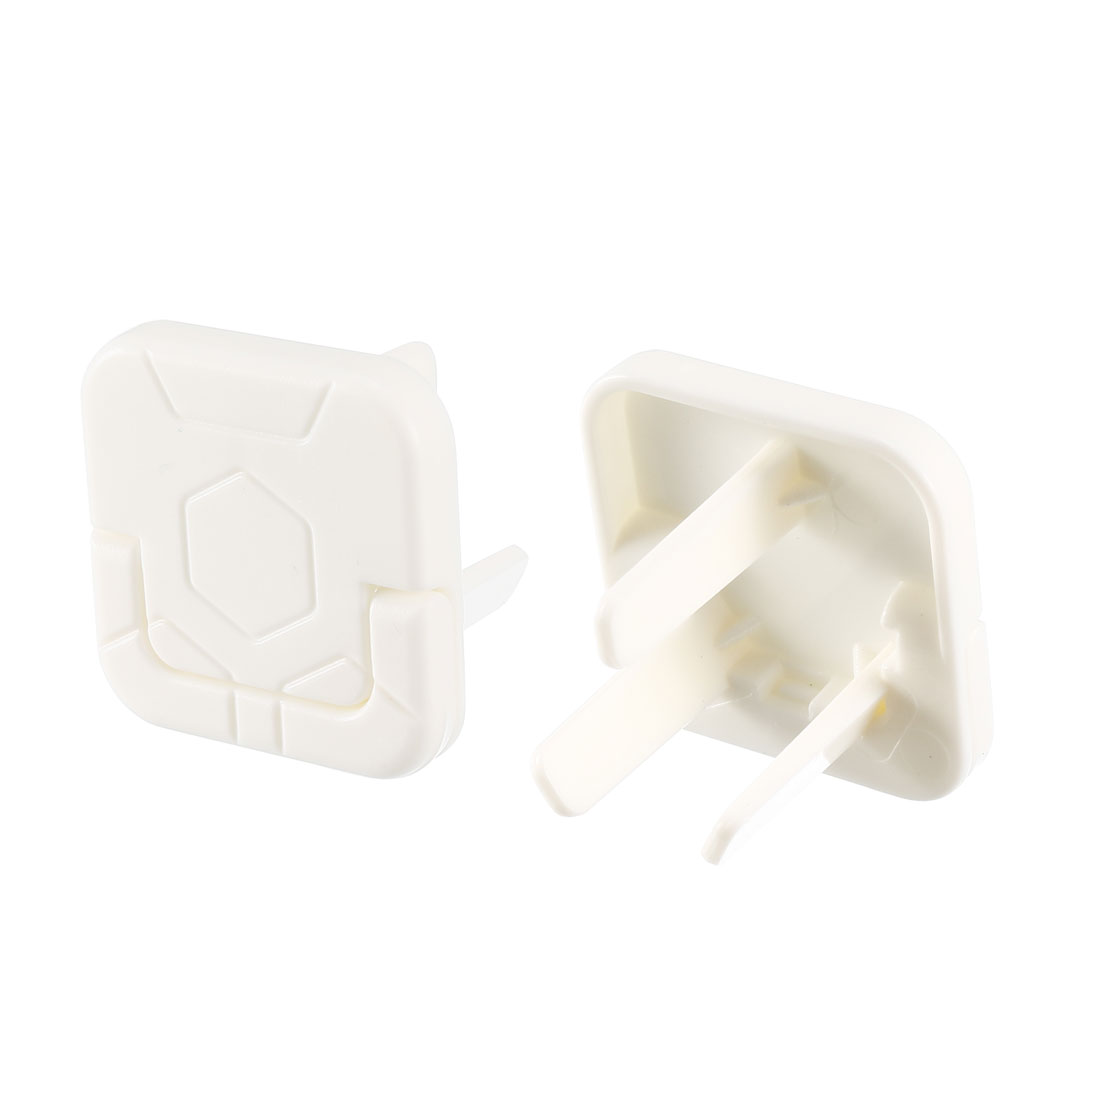 AU Standard 3 Prong Power Socket Covers Durable Electric Proofing White 55 Pcs